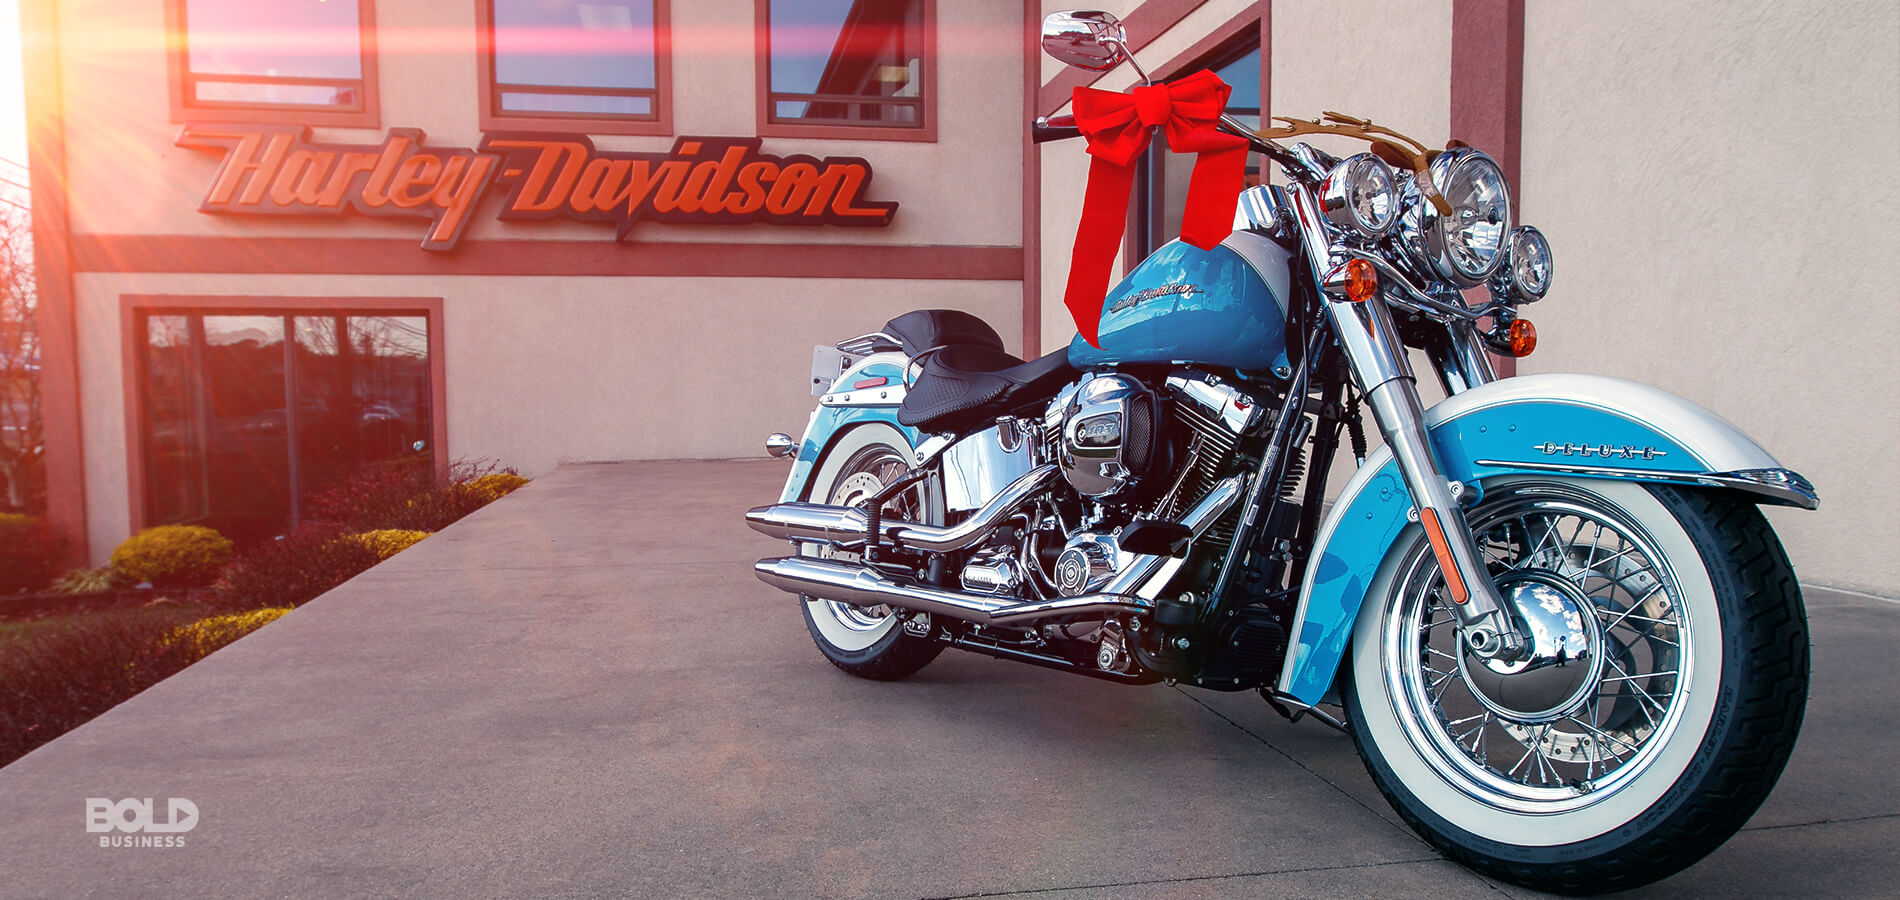 a photo of a Harley Davidson big bike parked in front of a Harley Davidson storefront amid the question of what a Harley Davidson rider might look like in the future